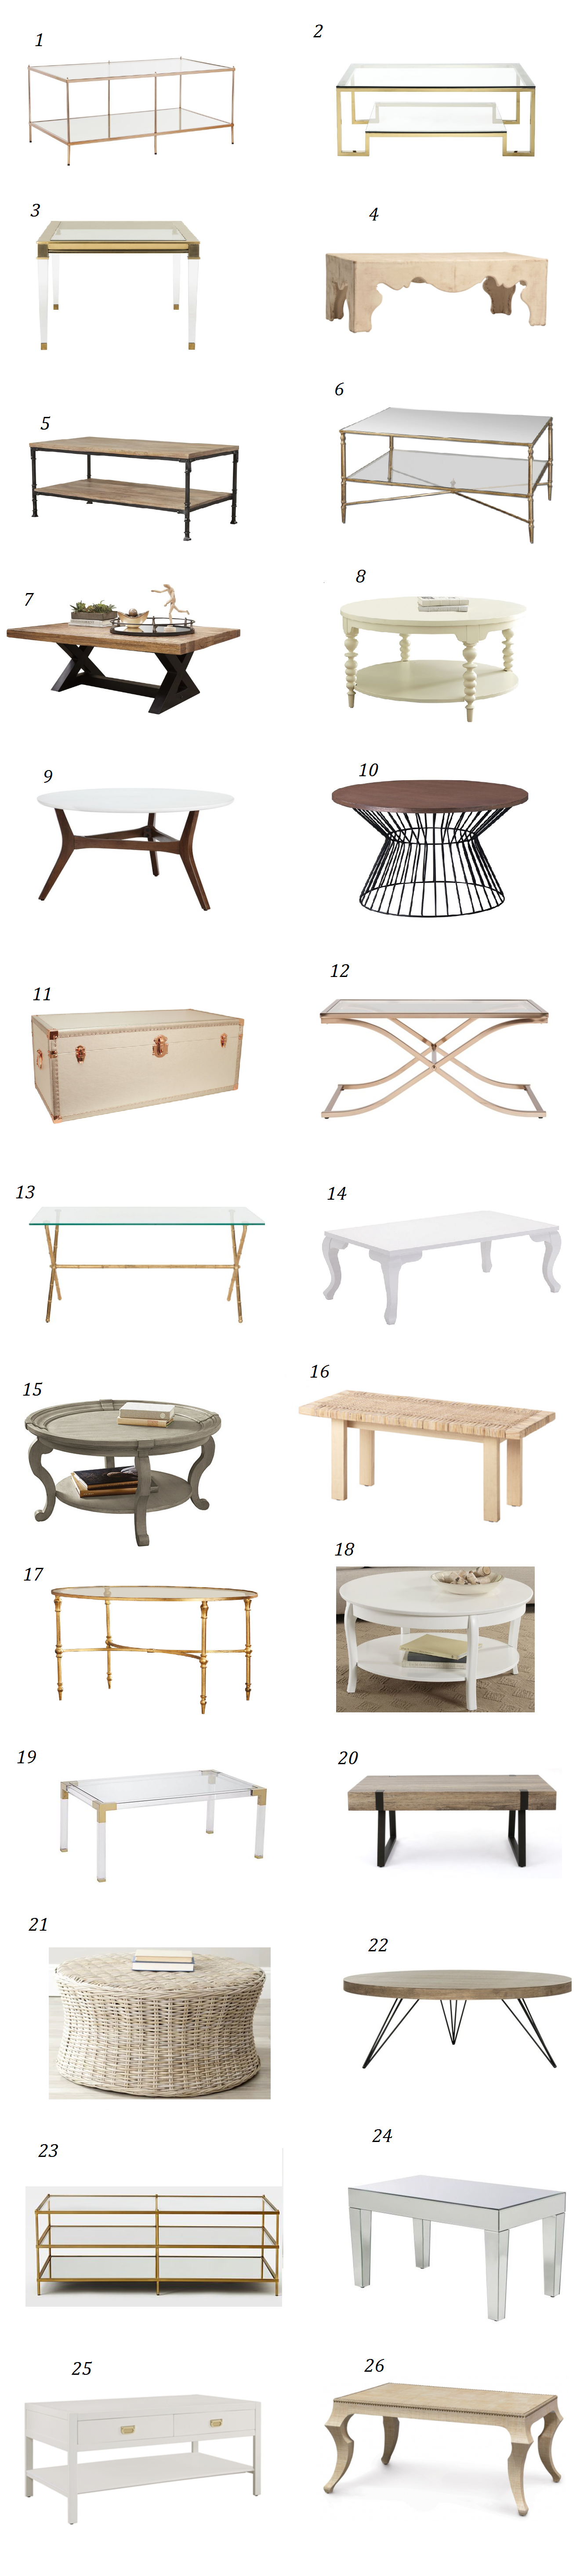 26 fantastic coffee tables.png